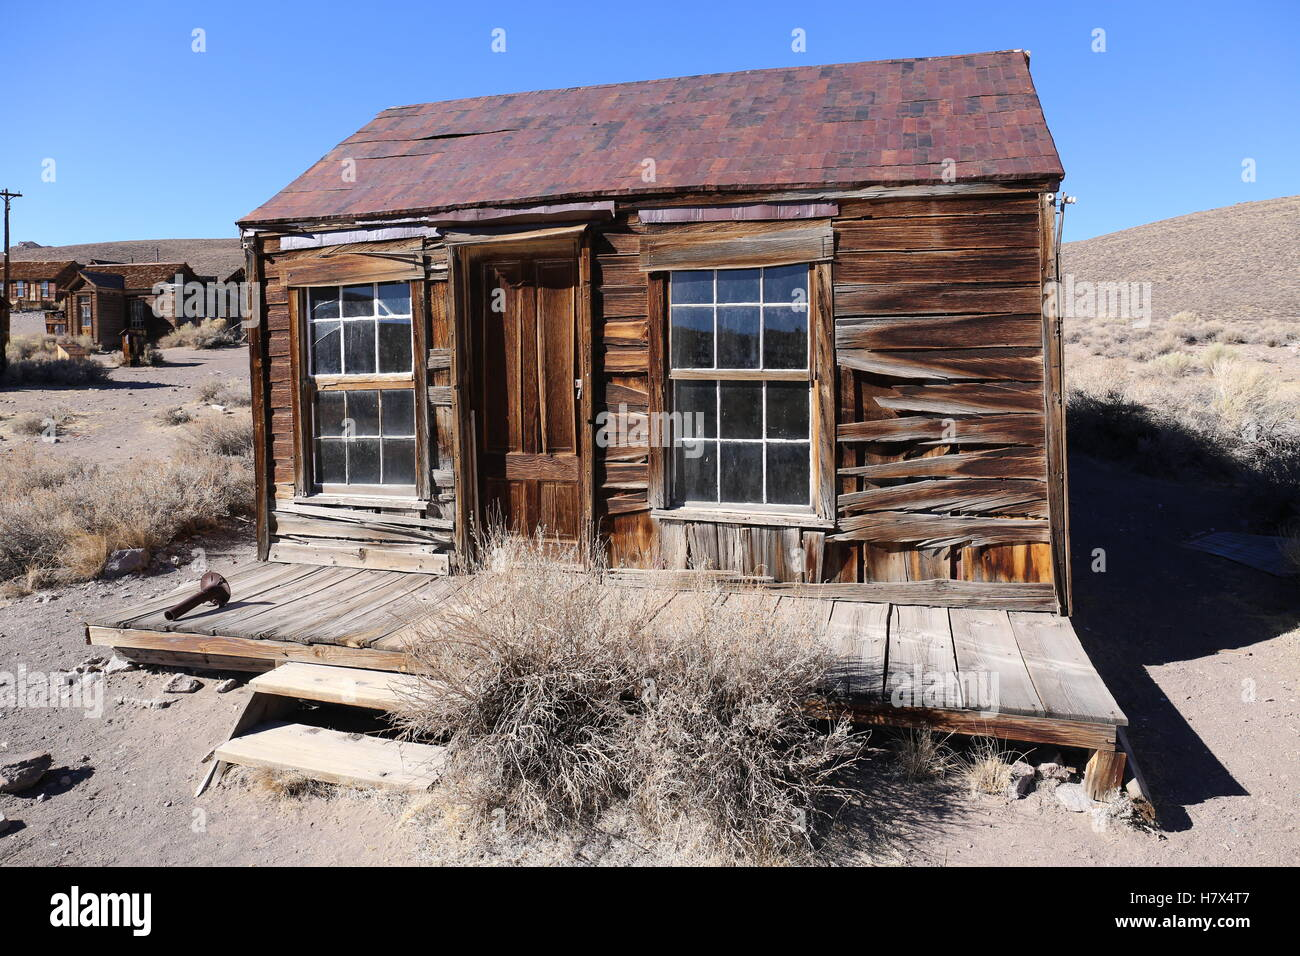 Old house in Bodie State historic Park, California, America - Stock Image